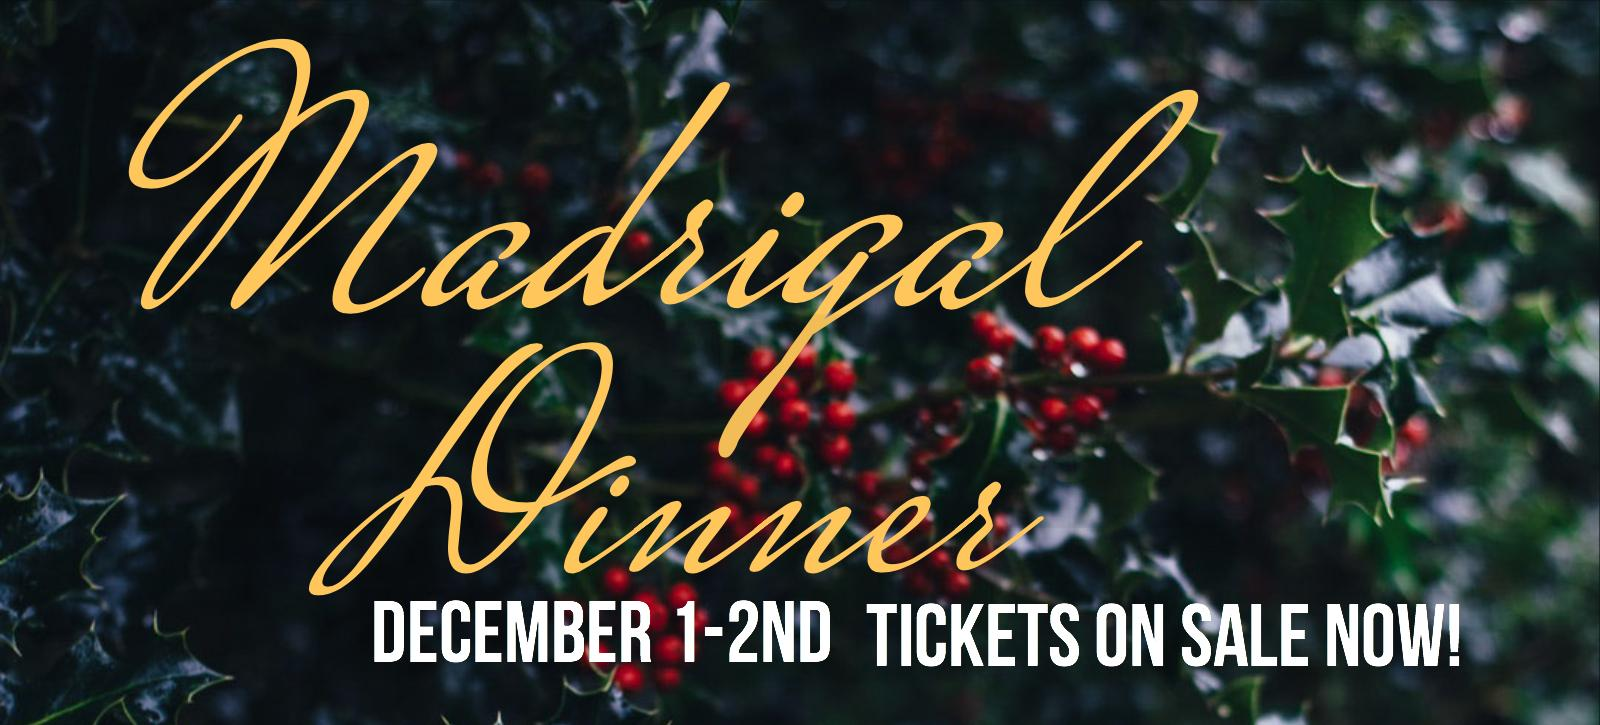 Madrigal Dinner tickets on sale now!